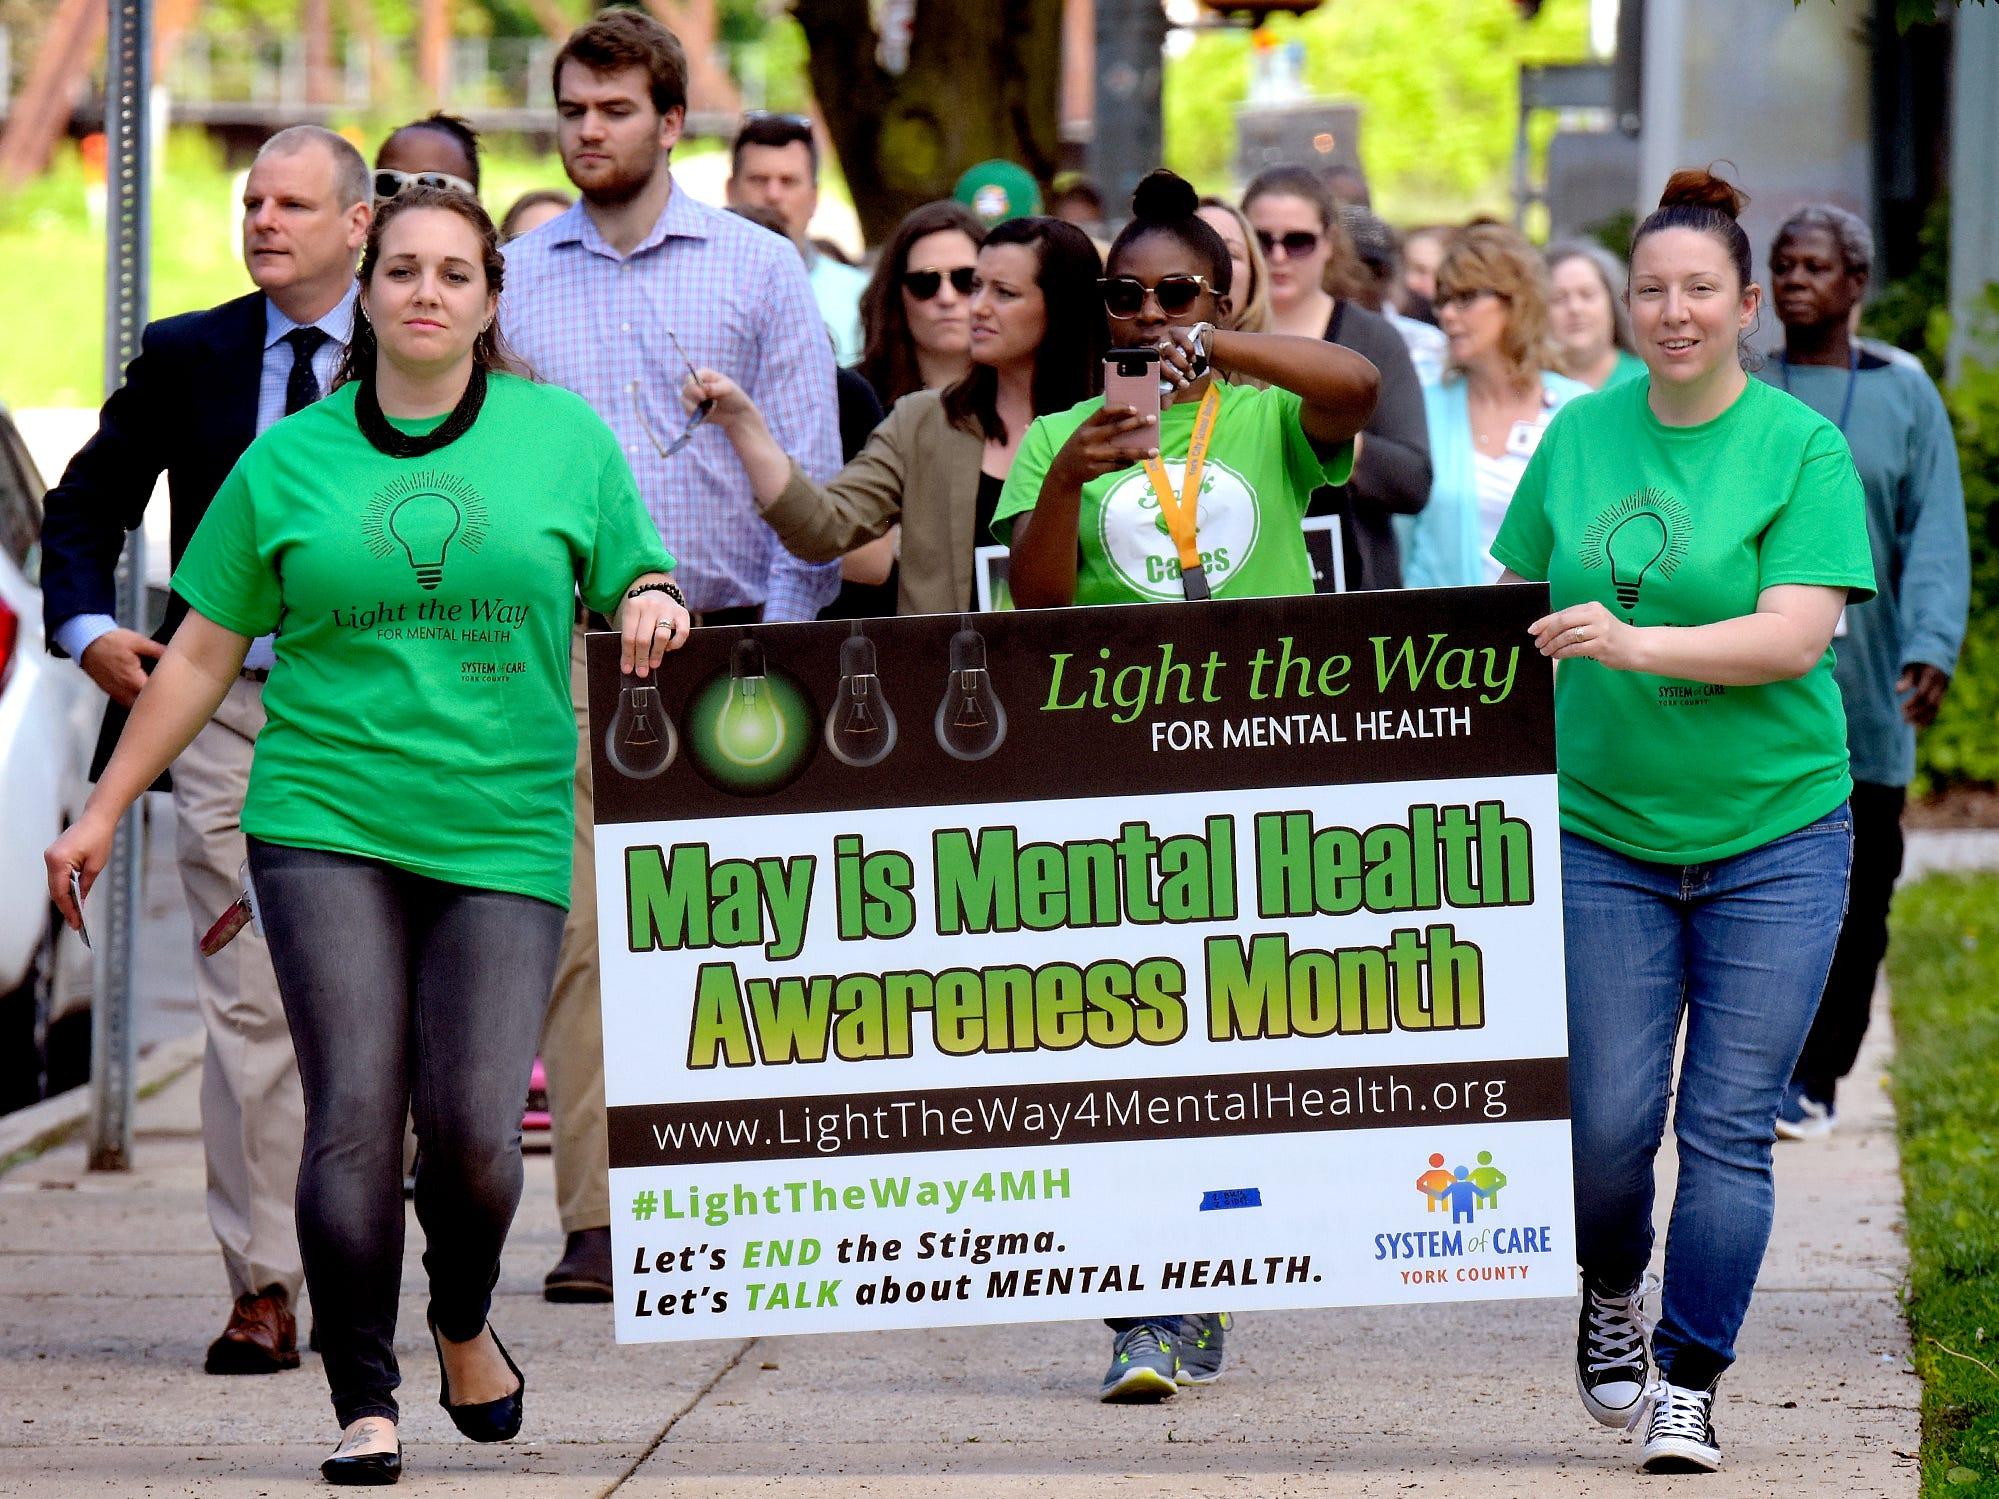 York County Human Services employees Kristin Hartman, left, and Victoria Valdes carry a sign during the Walk To Raise Awareness About Mental Health in York City Monday, May 6, 2019. The York County System of Care in collaboration with York County Human Services sponsored the walk during Mental Health Awareness Month. Area business and organizations will be displaying green lighting through May 12th to show support. Bill Kalina photo